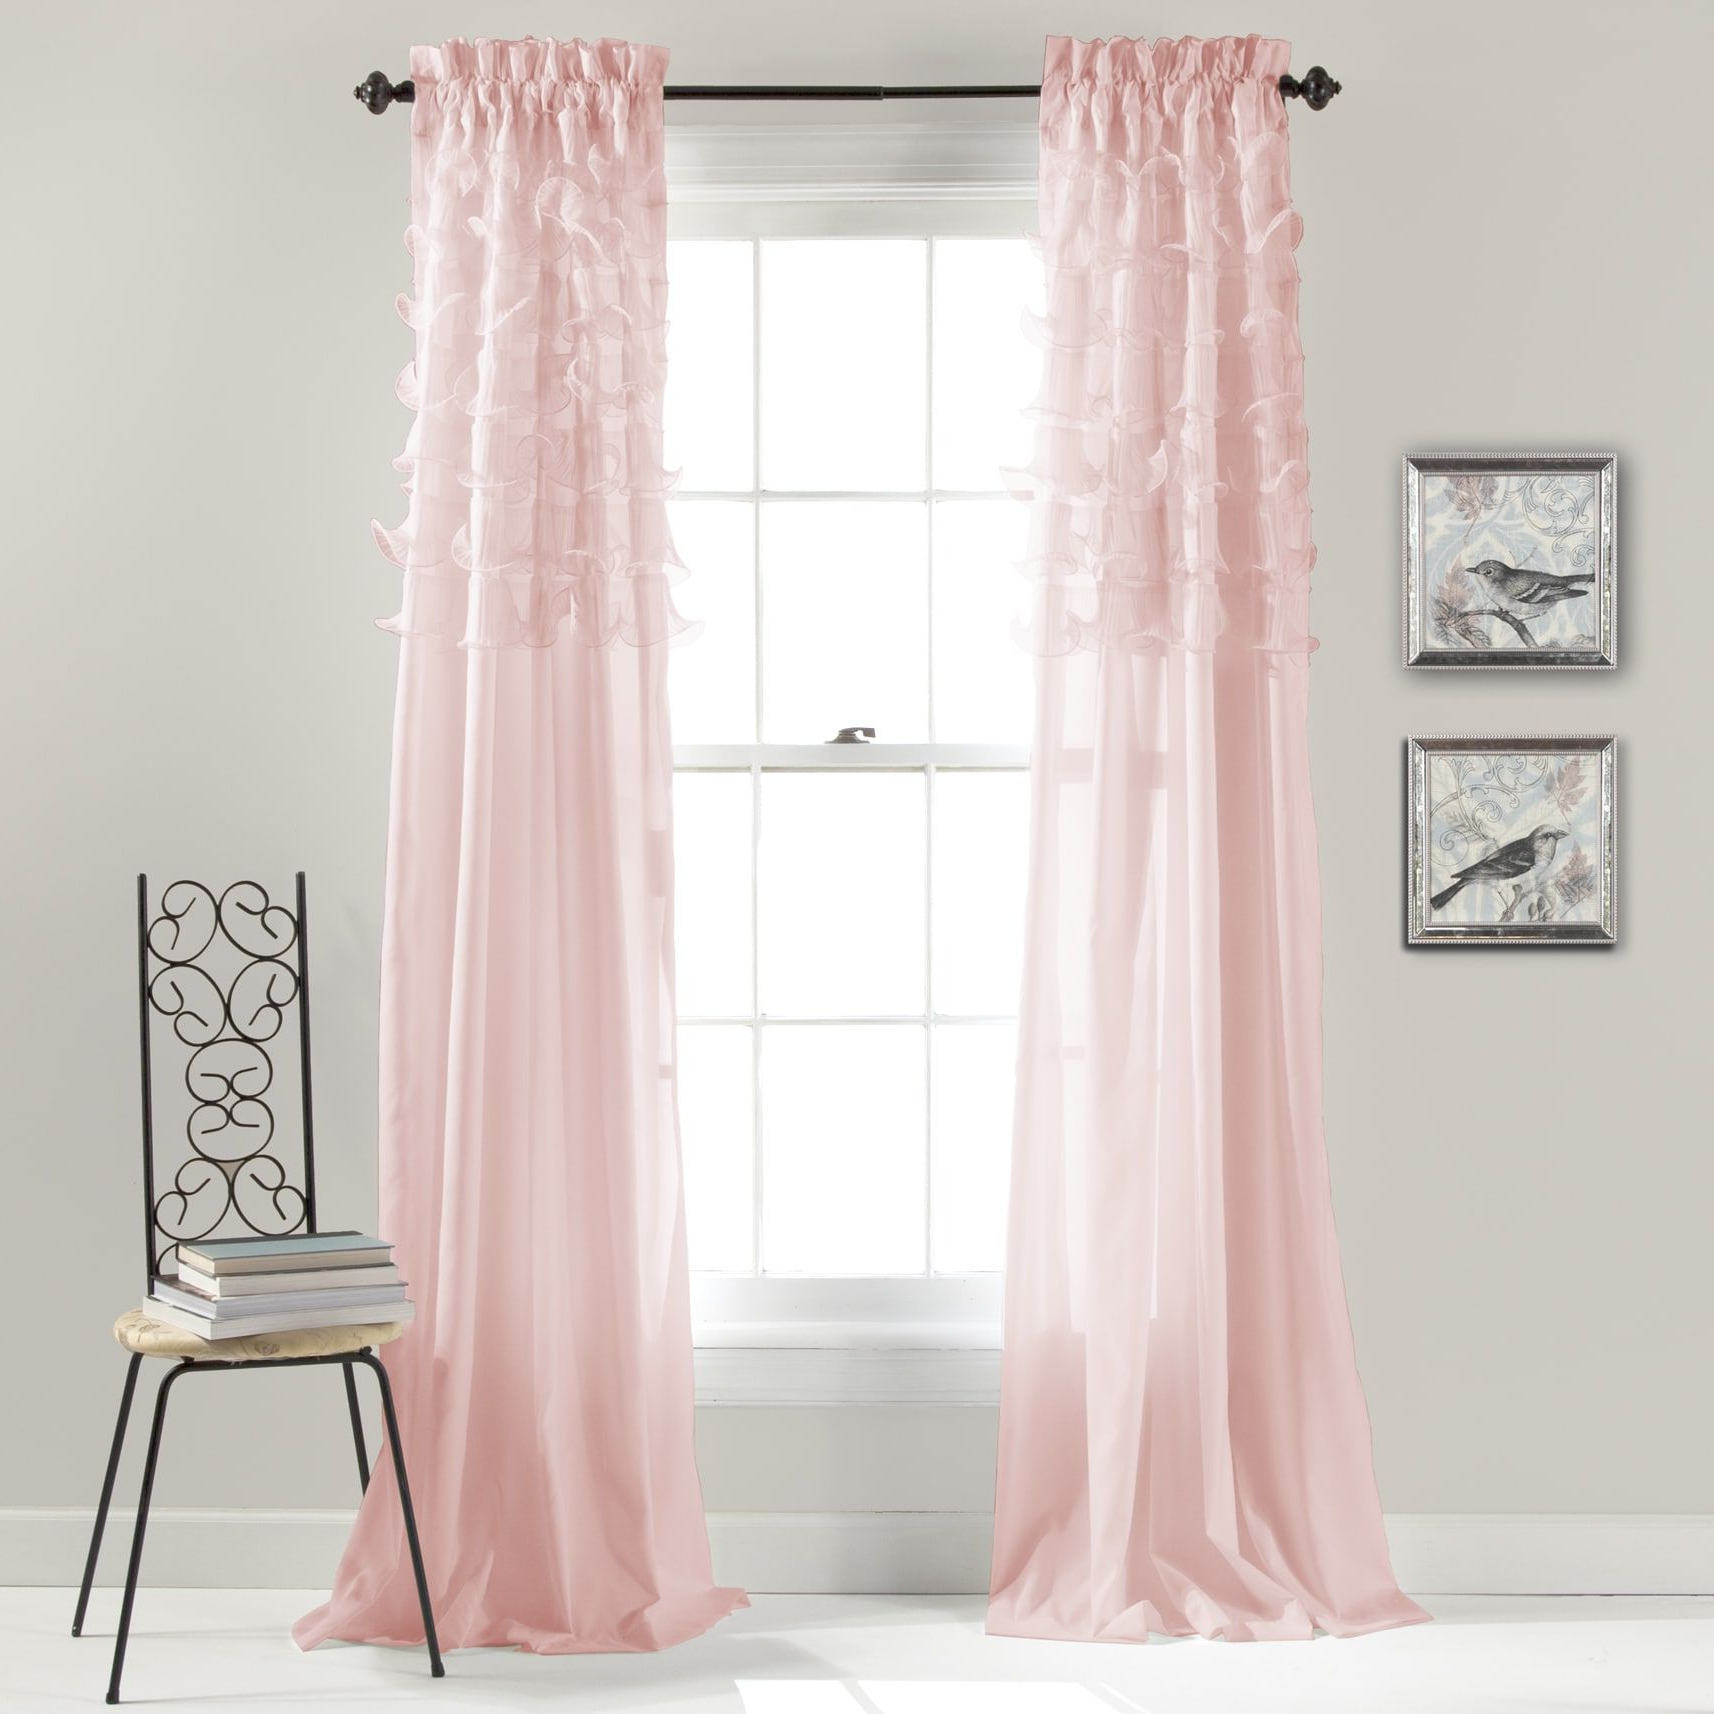 Trendy Lush Decor Avery Curtain Panel Pair – 54 X 84 (Pink Within Lydia Ruffle Window Curtain Panel Pairs (View 20 of 20)